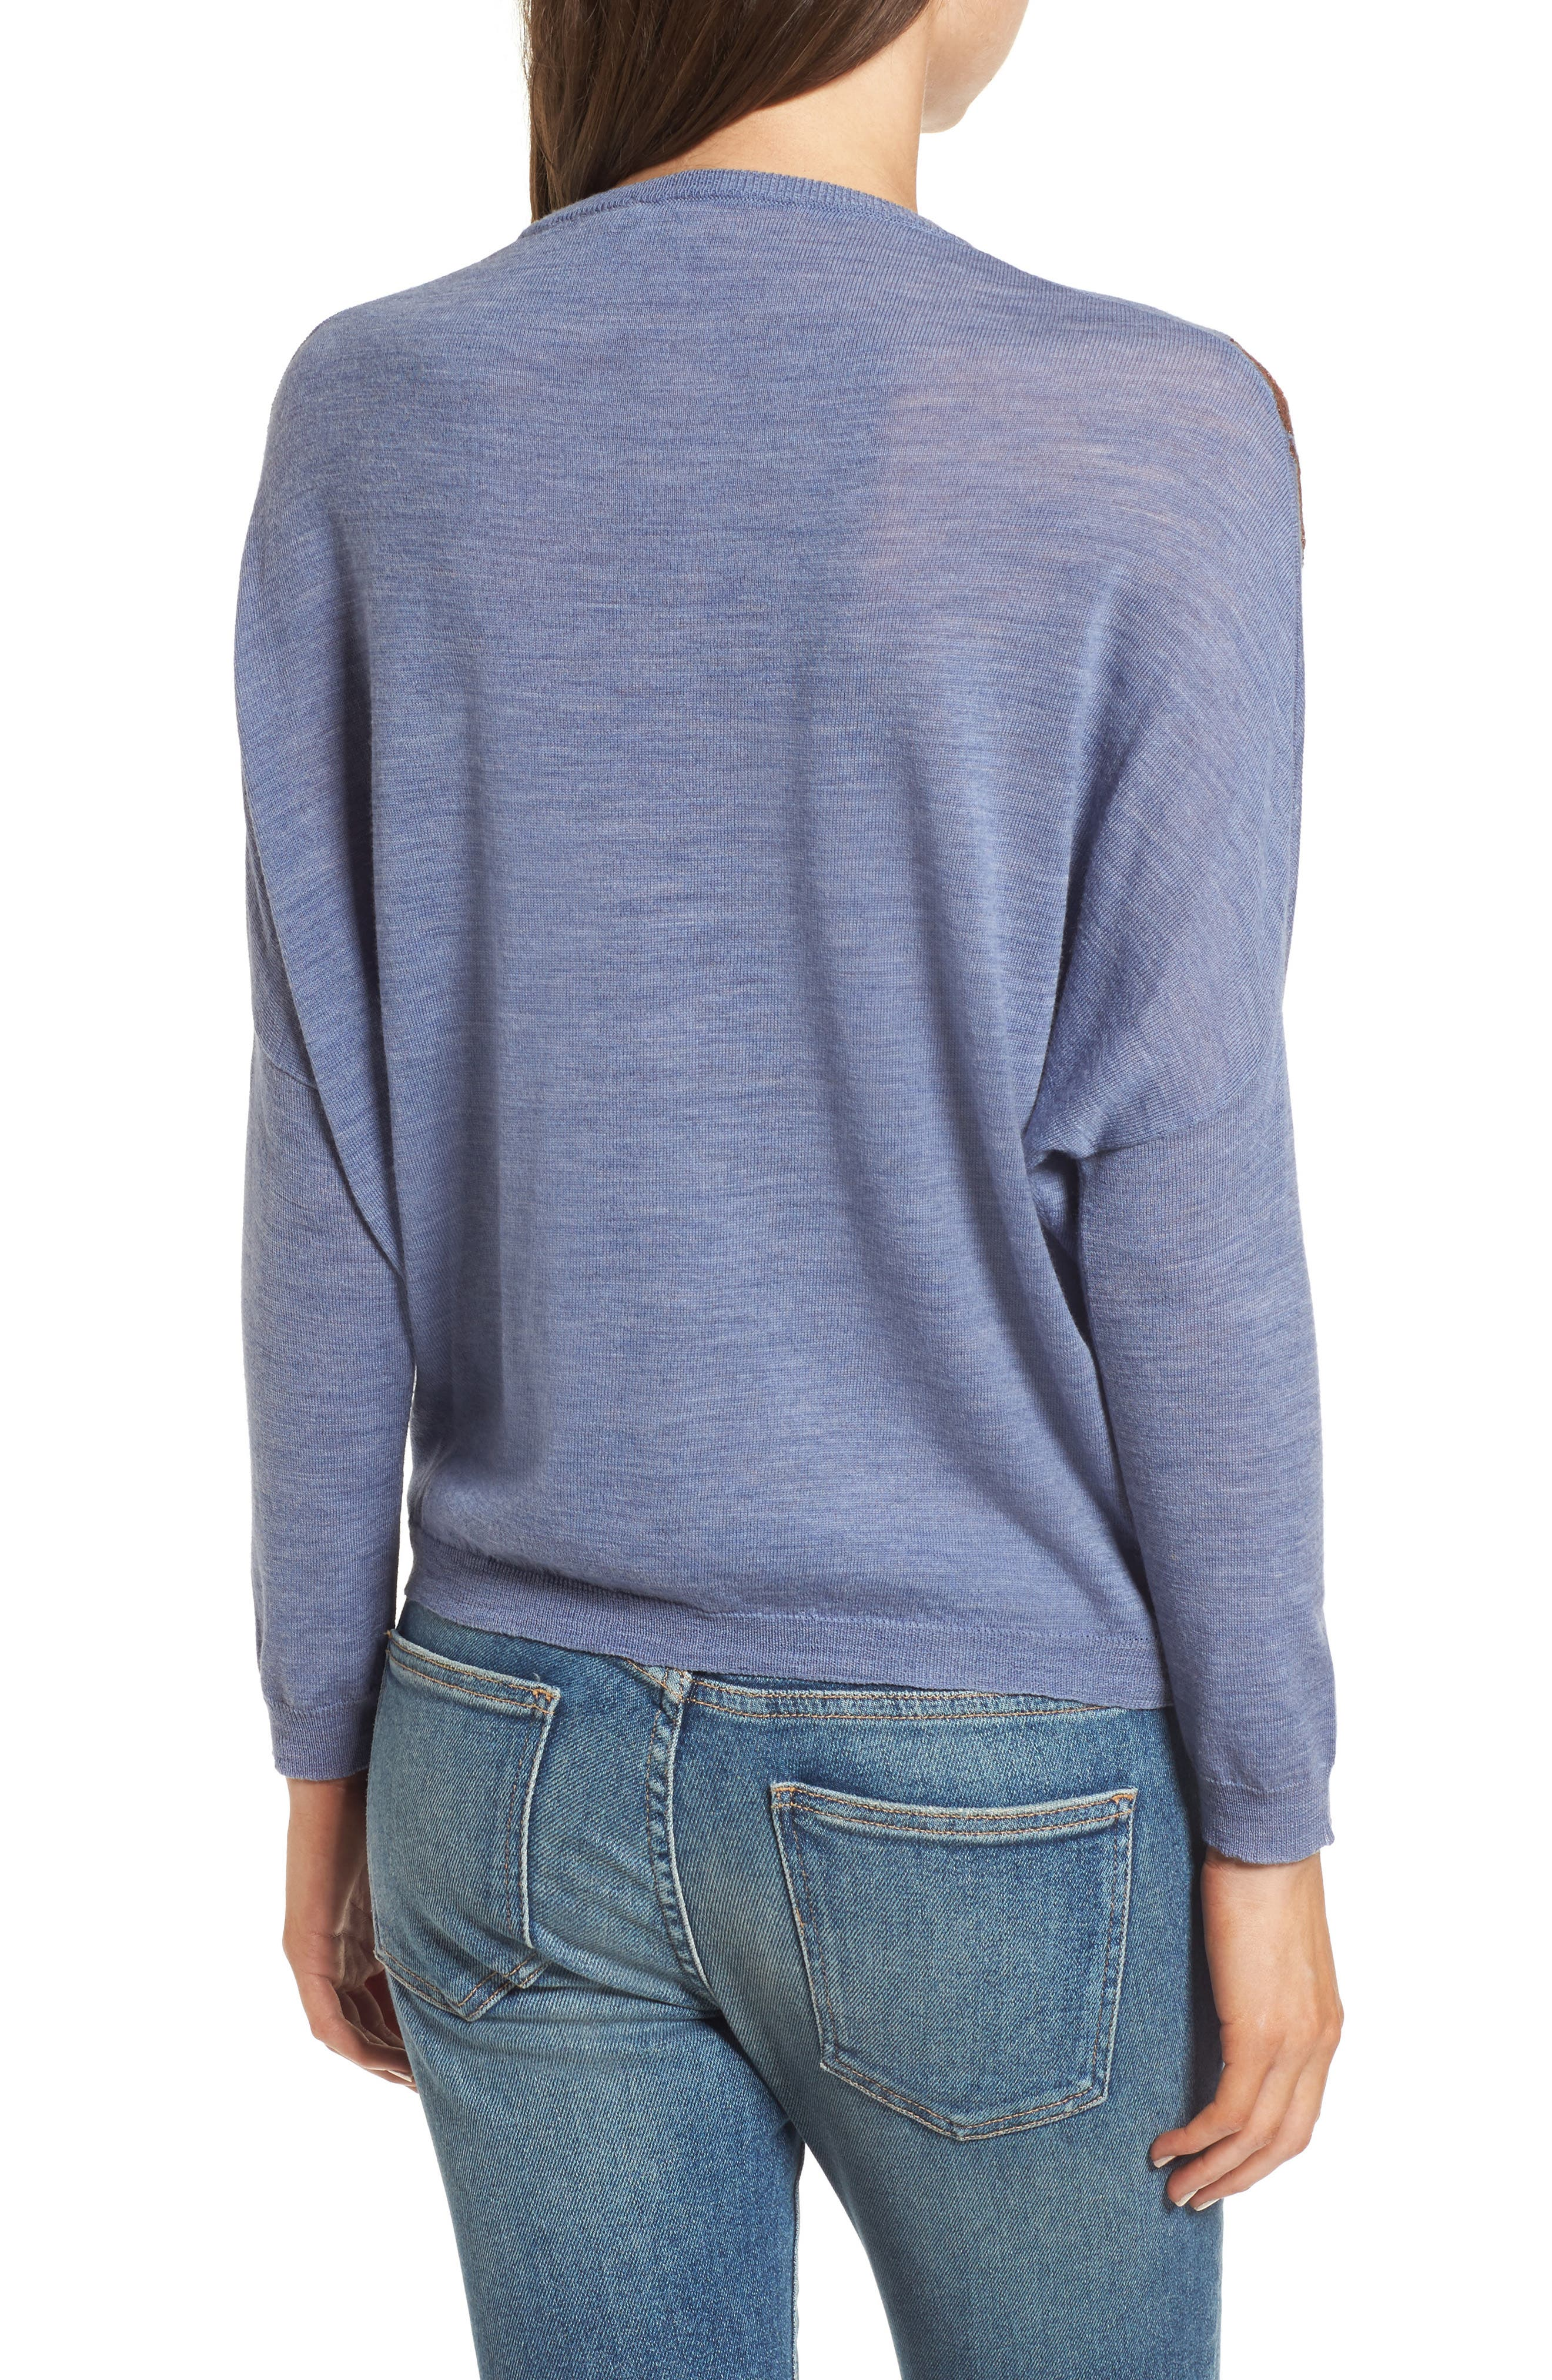 Blupalm Sweater,                             Alternate thumbnail 2, color,                             400